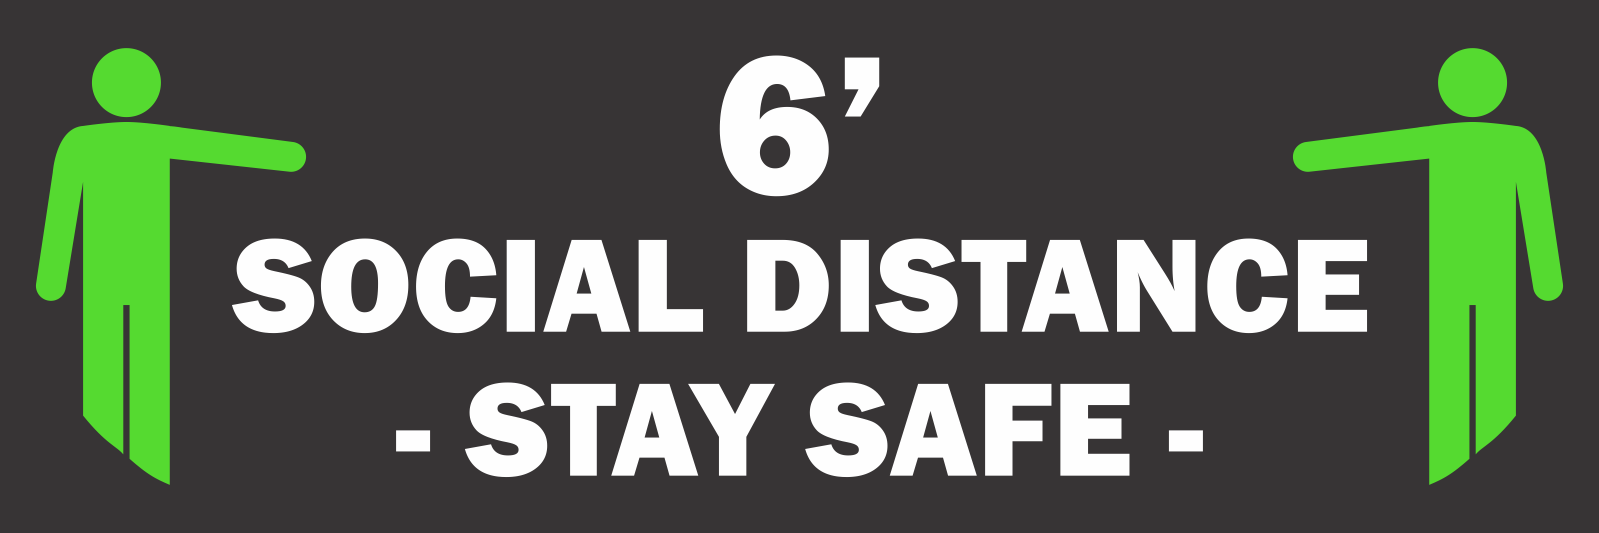 Social Distance Floor Sticker - Stay Safe